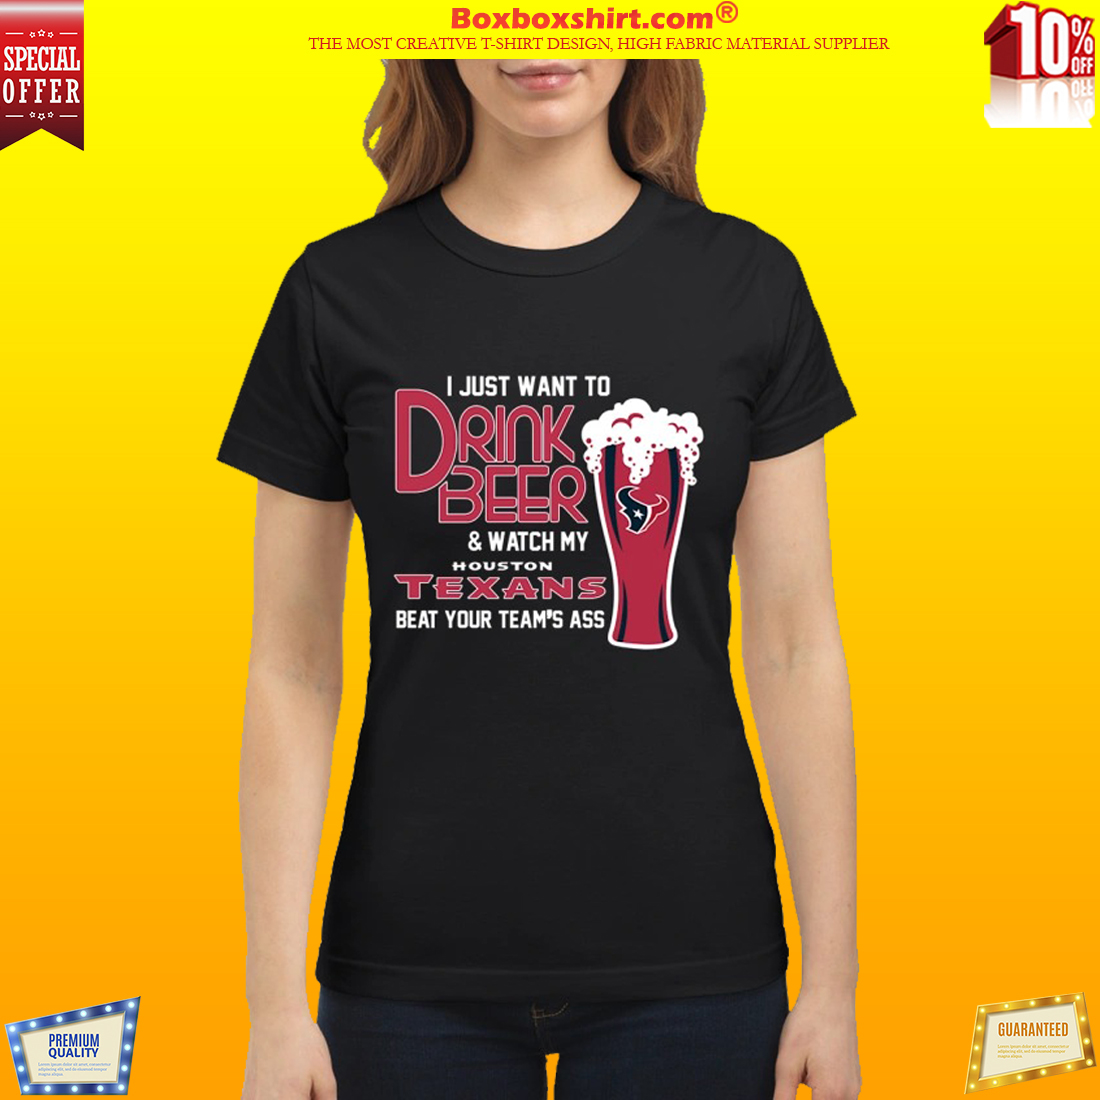 I just want to drink beer and watch my Houstons Texans beat your team ass classic shirt